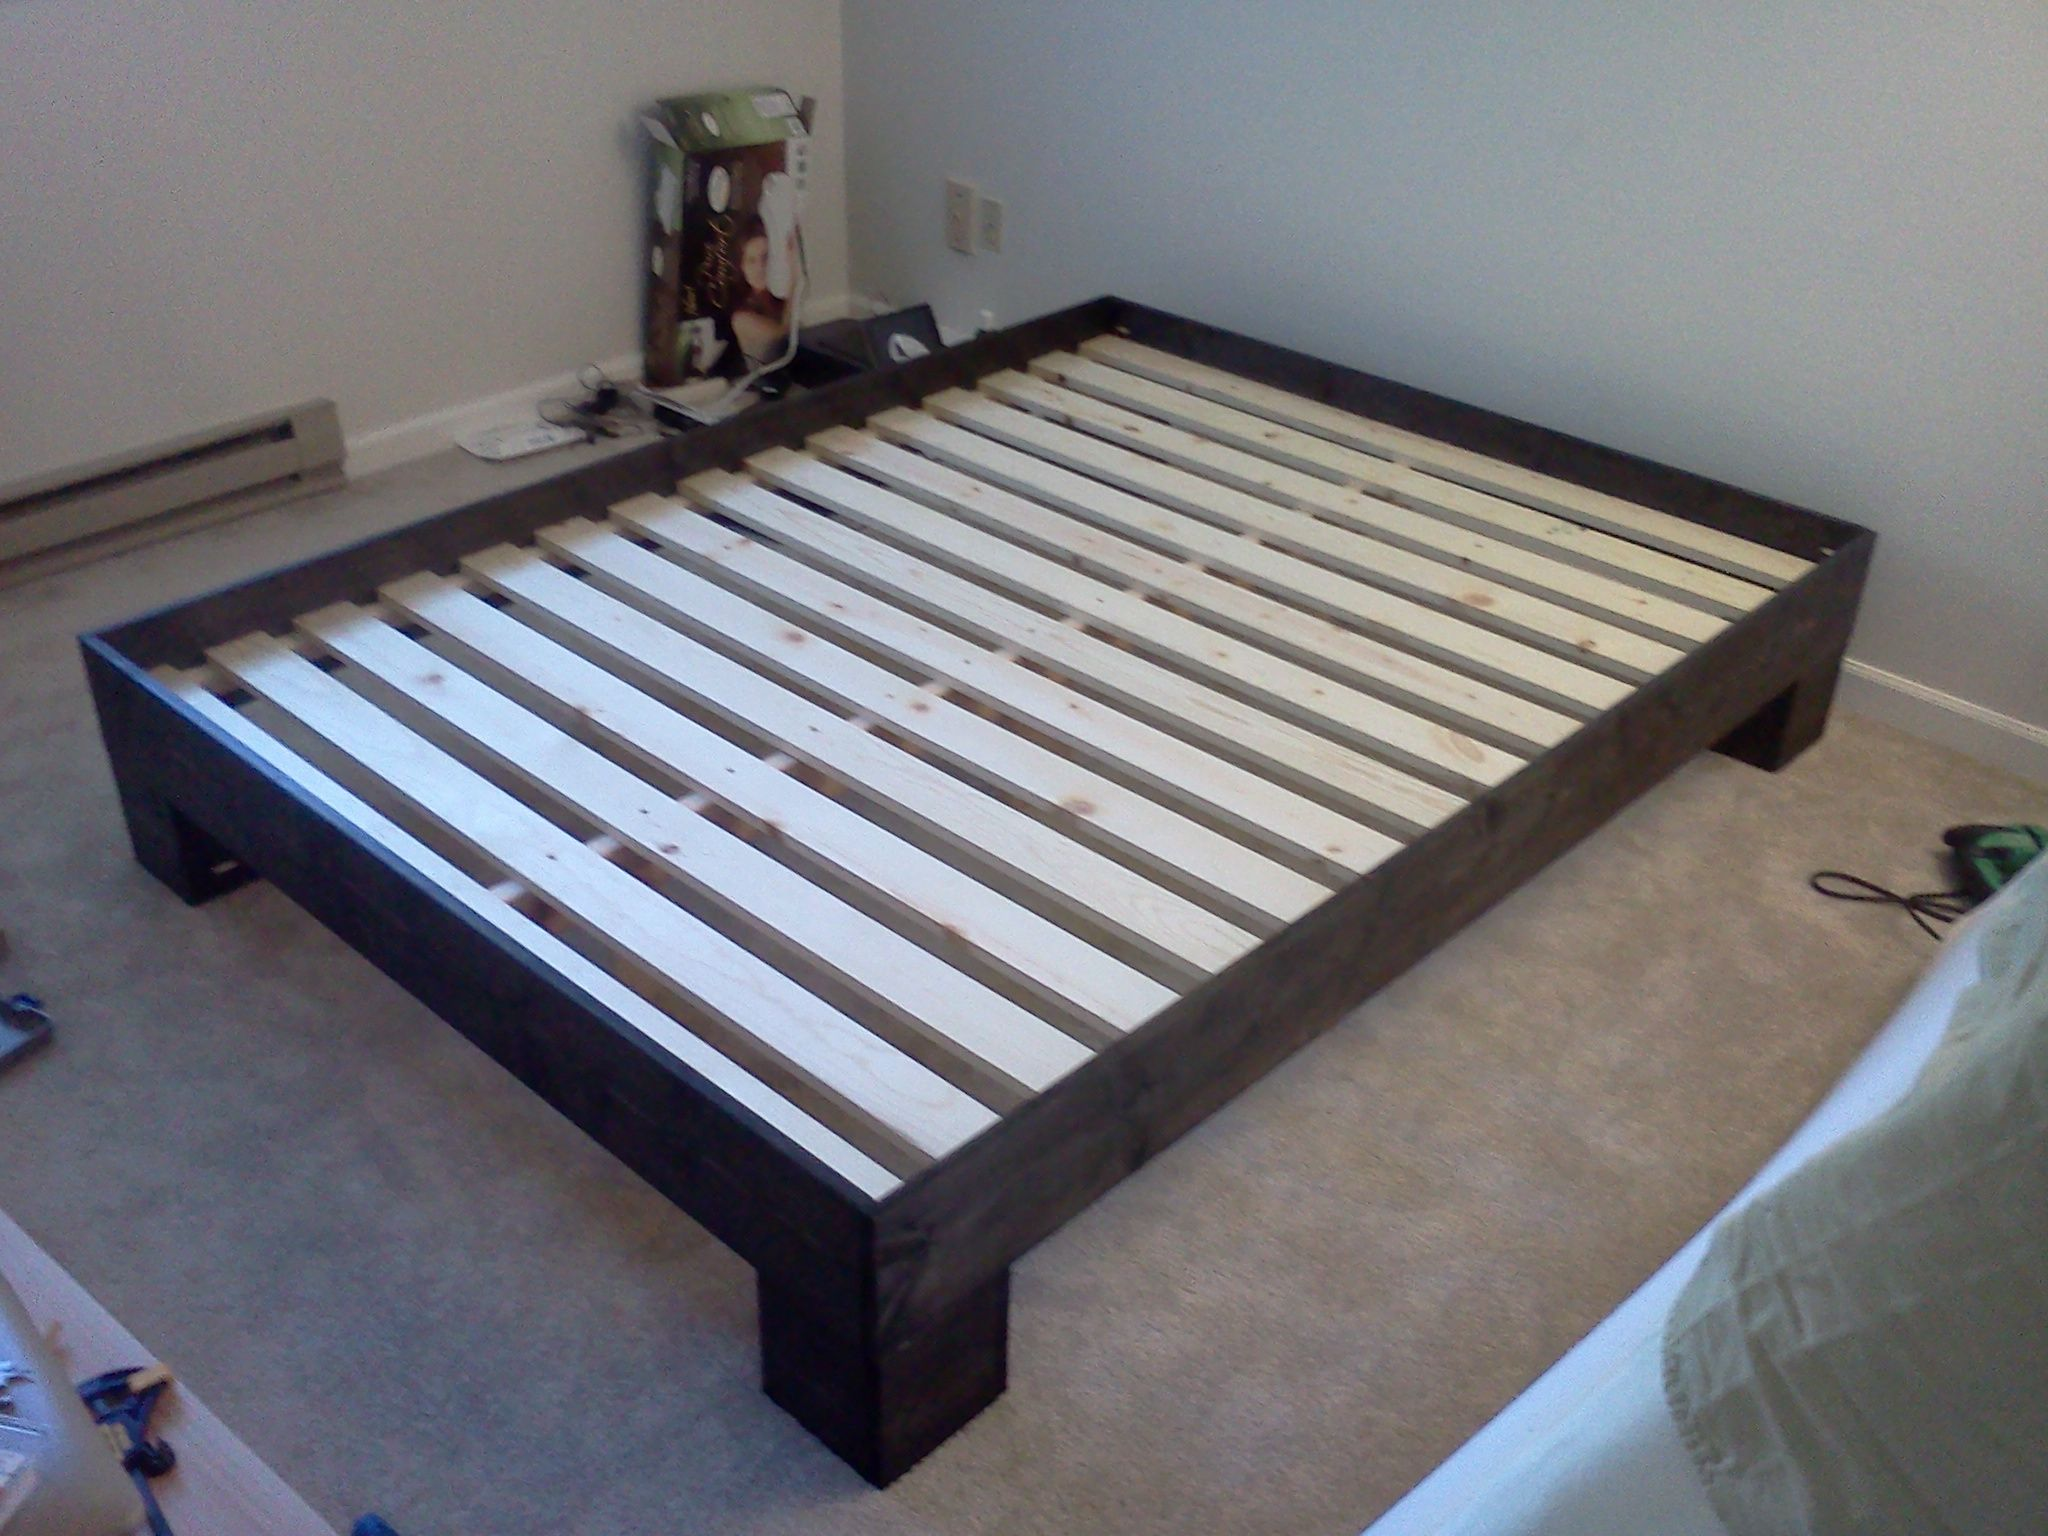 Make your own platform bed frame woodworking workshop for Make your own bed frame ideas